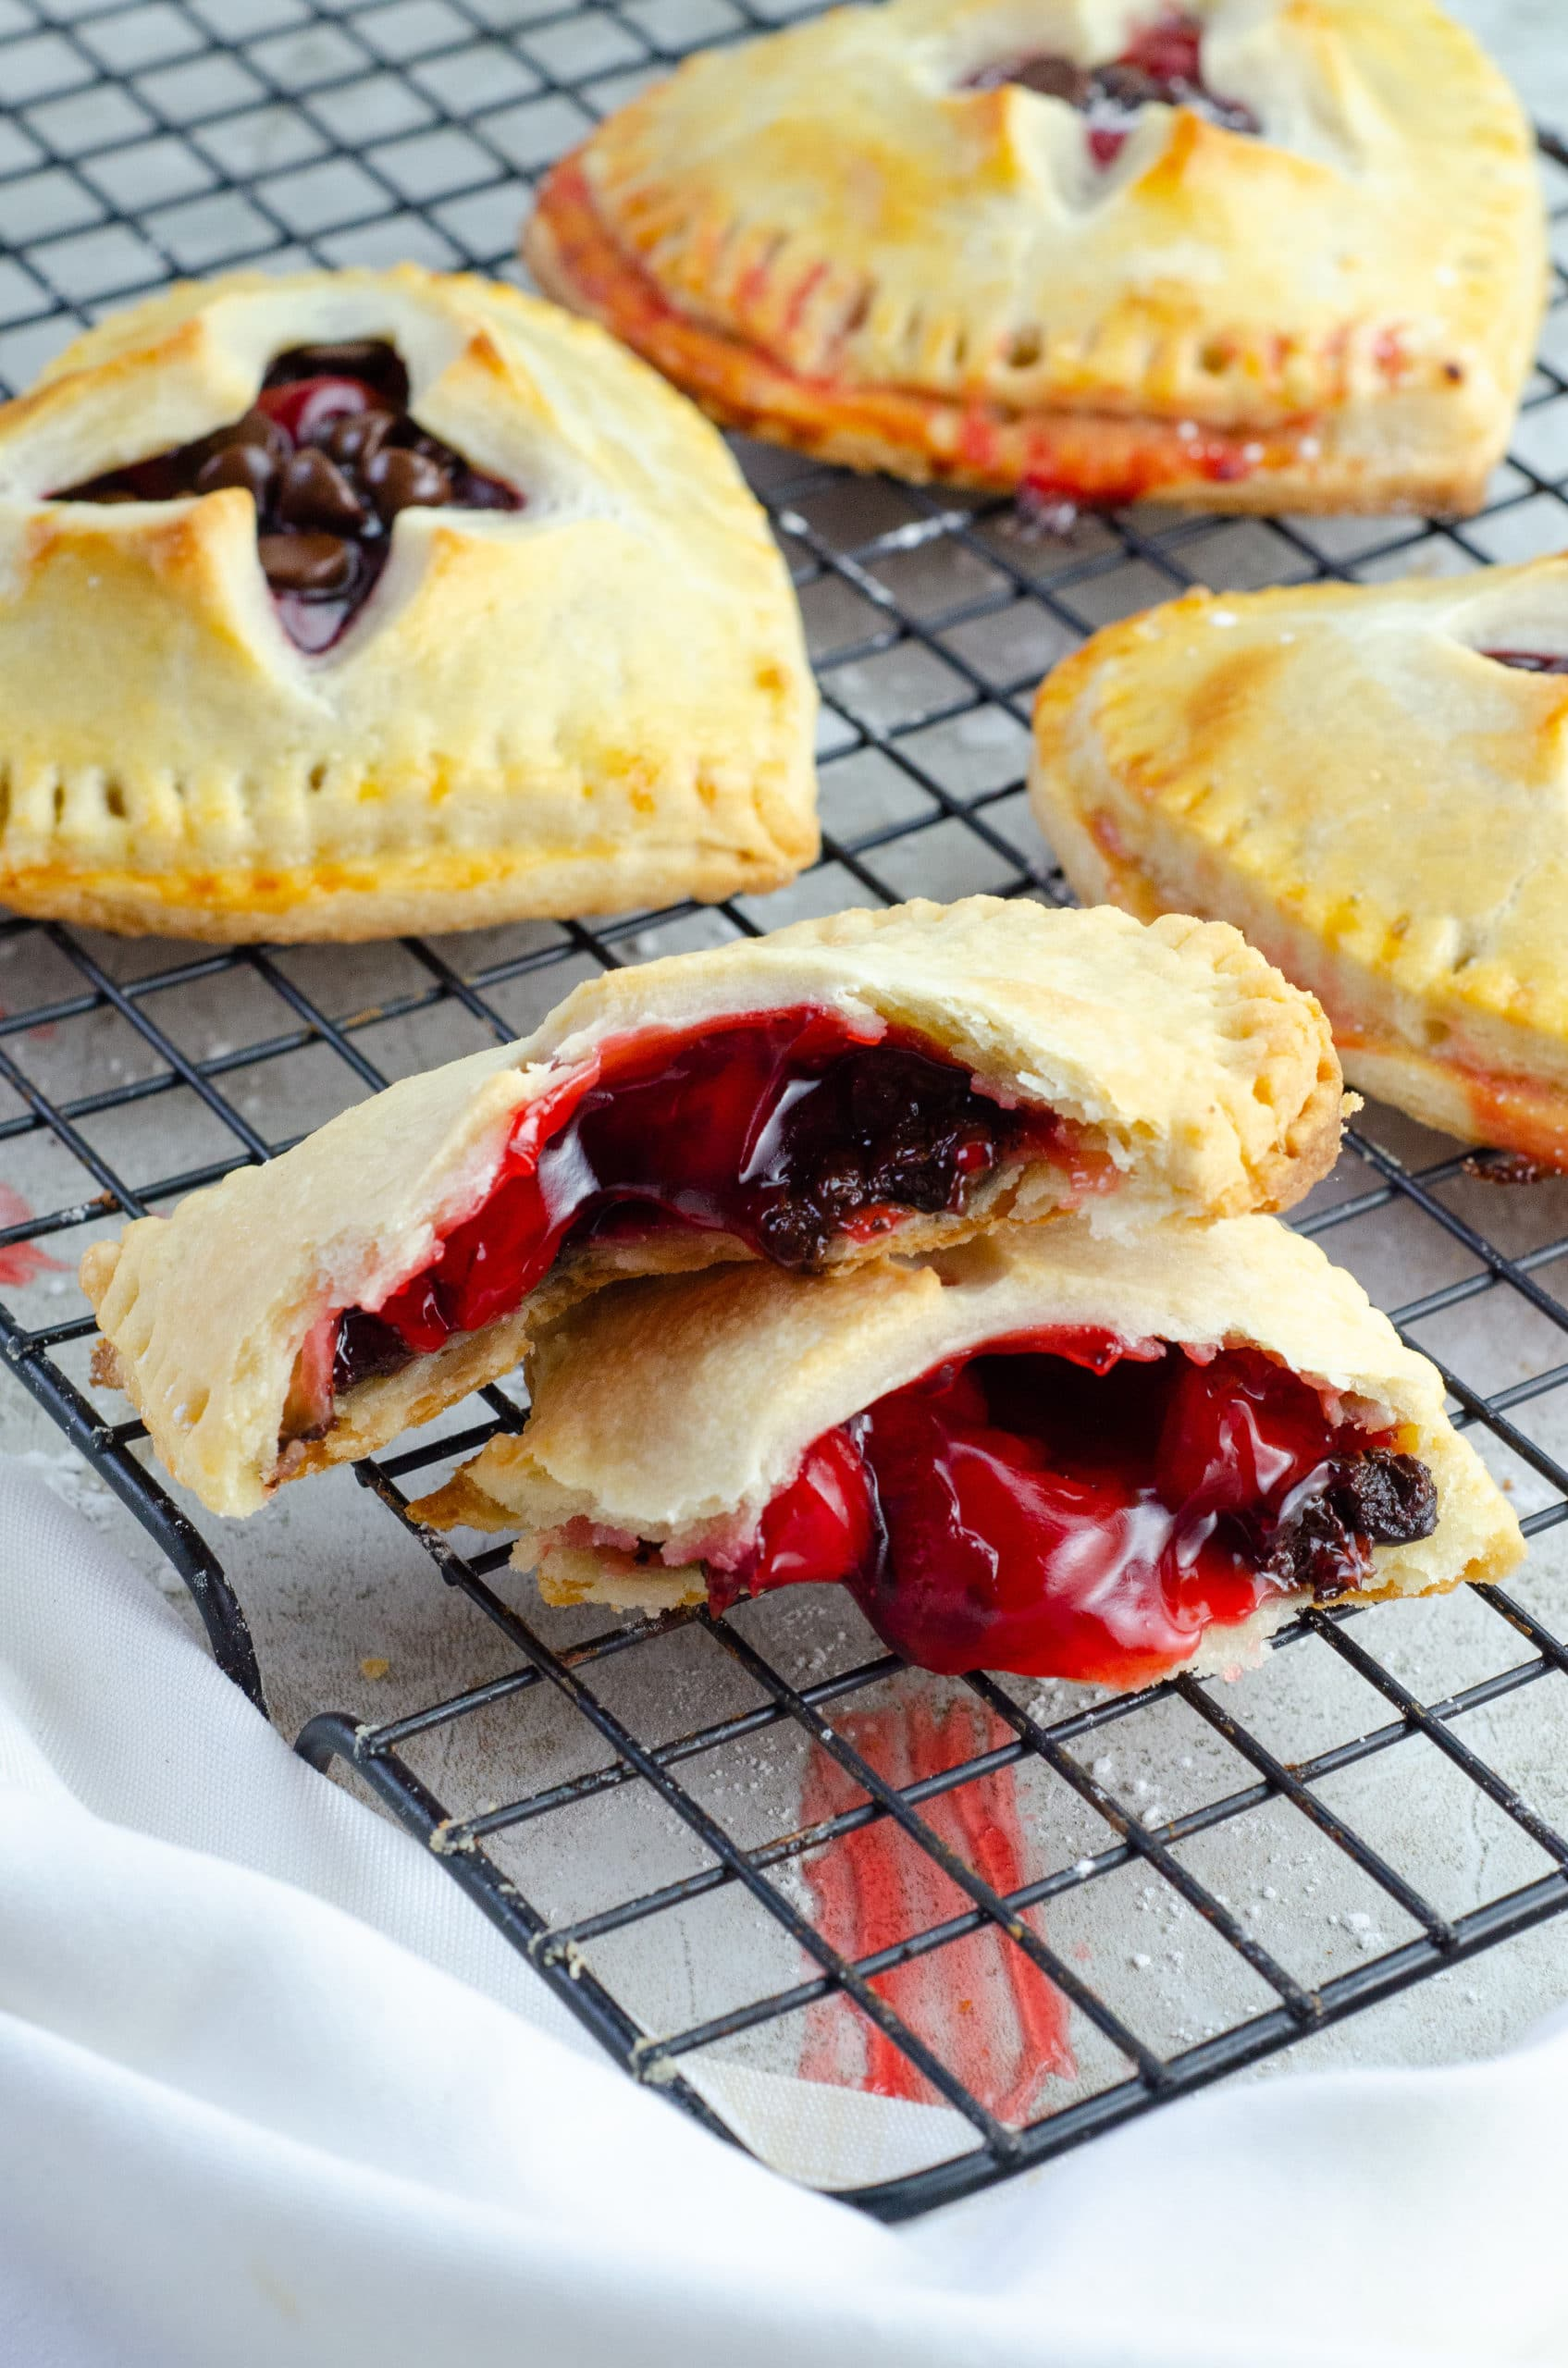 Chocolate Cherry Hand Pies Opened. Say I heart you to someone special this Valentine's Day with a delicious homemade treat. Try my super easy to make Chocolate Cherry Hand Pies which include a from scratch buttery flaky pie crust.